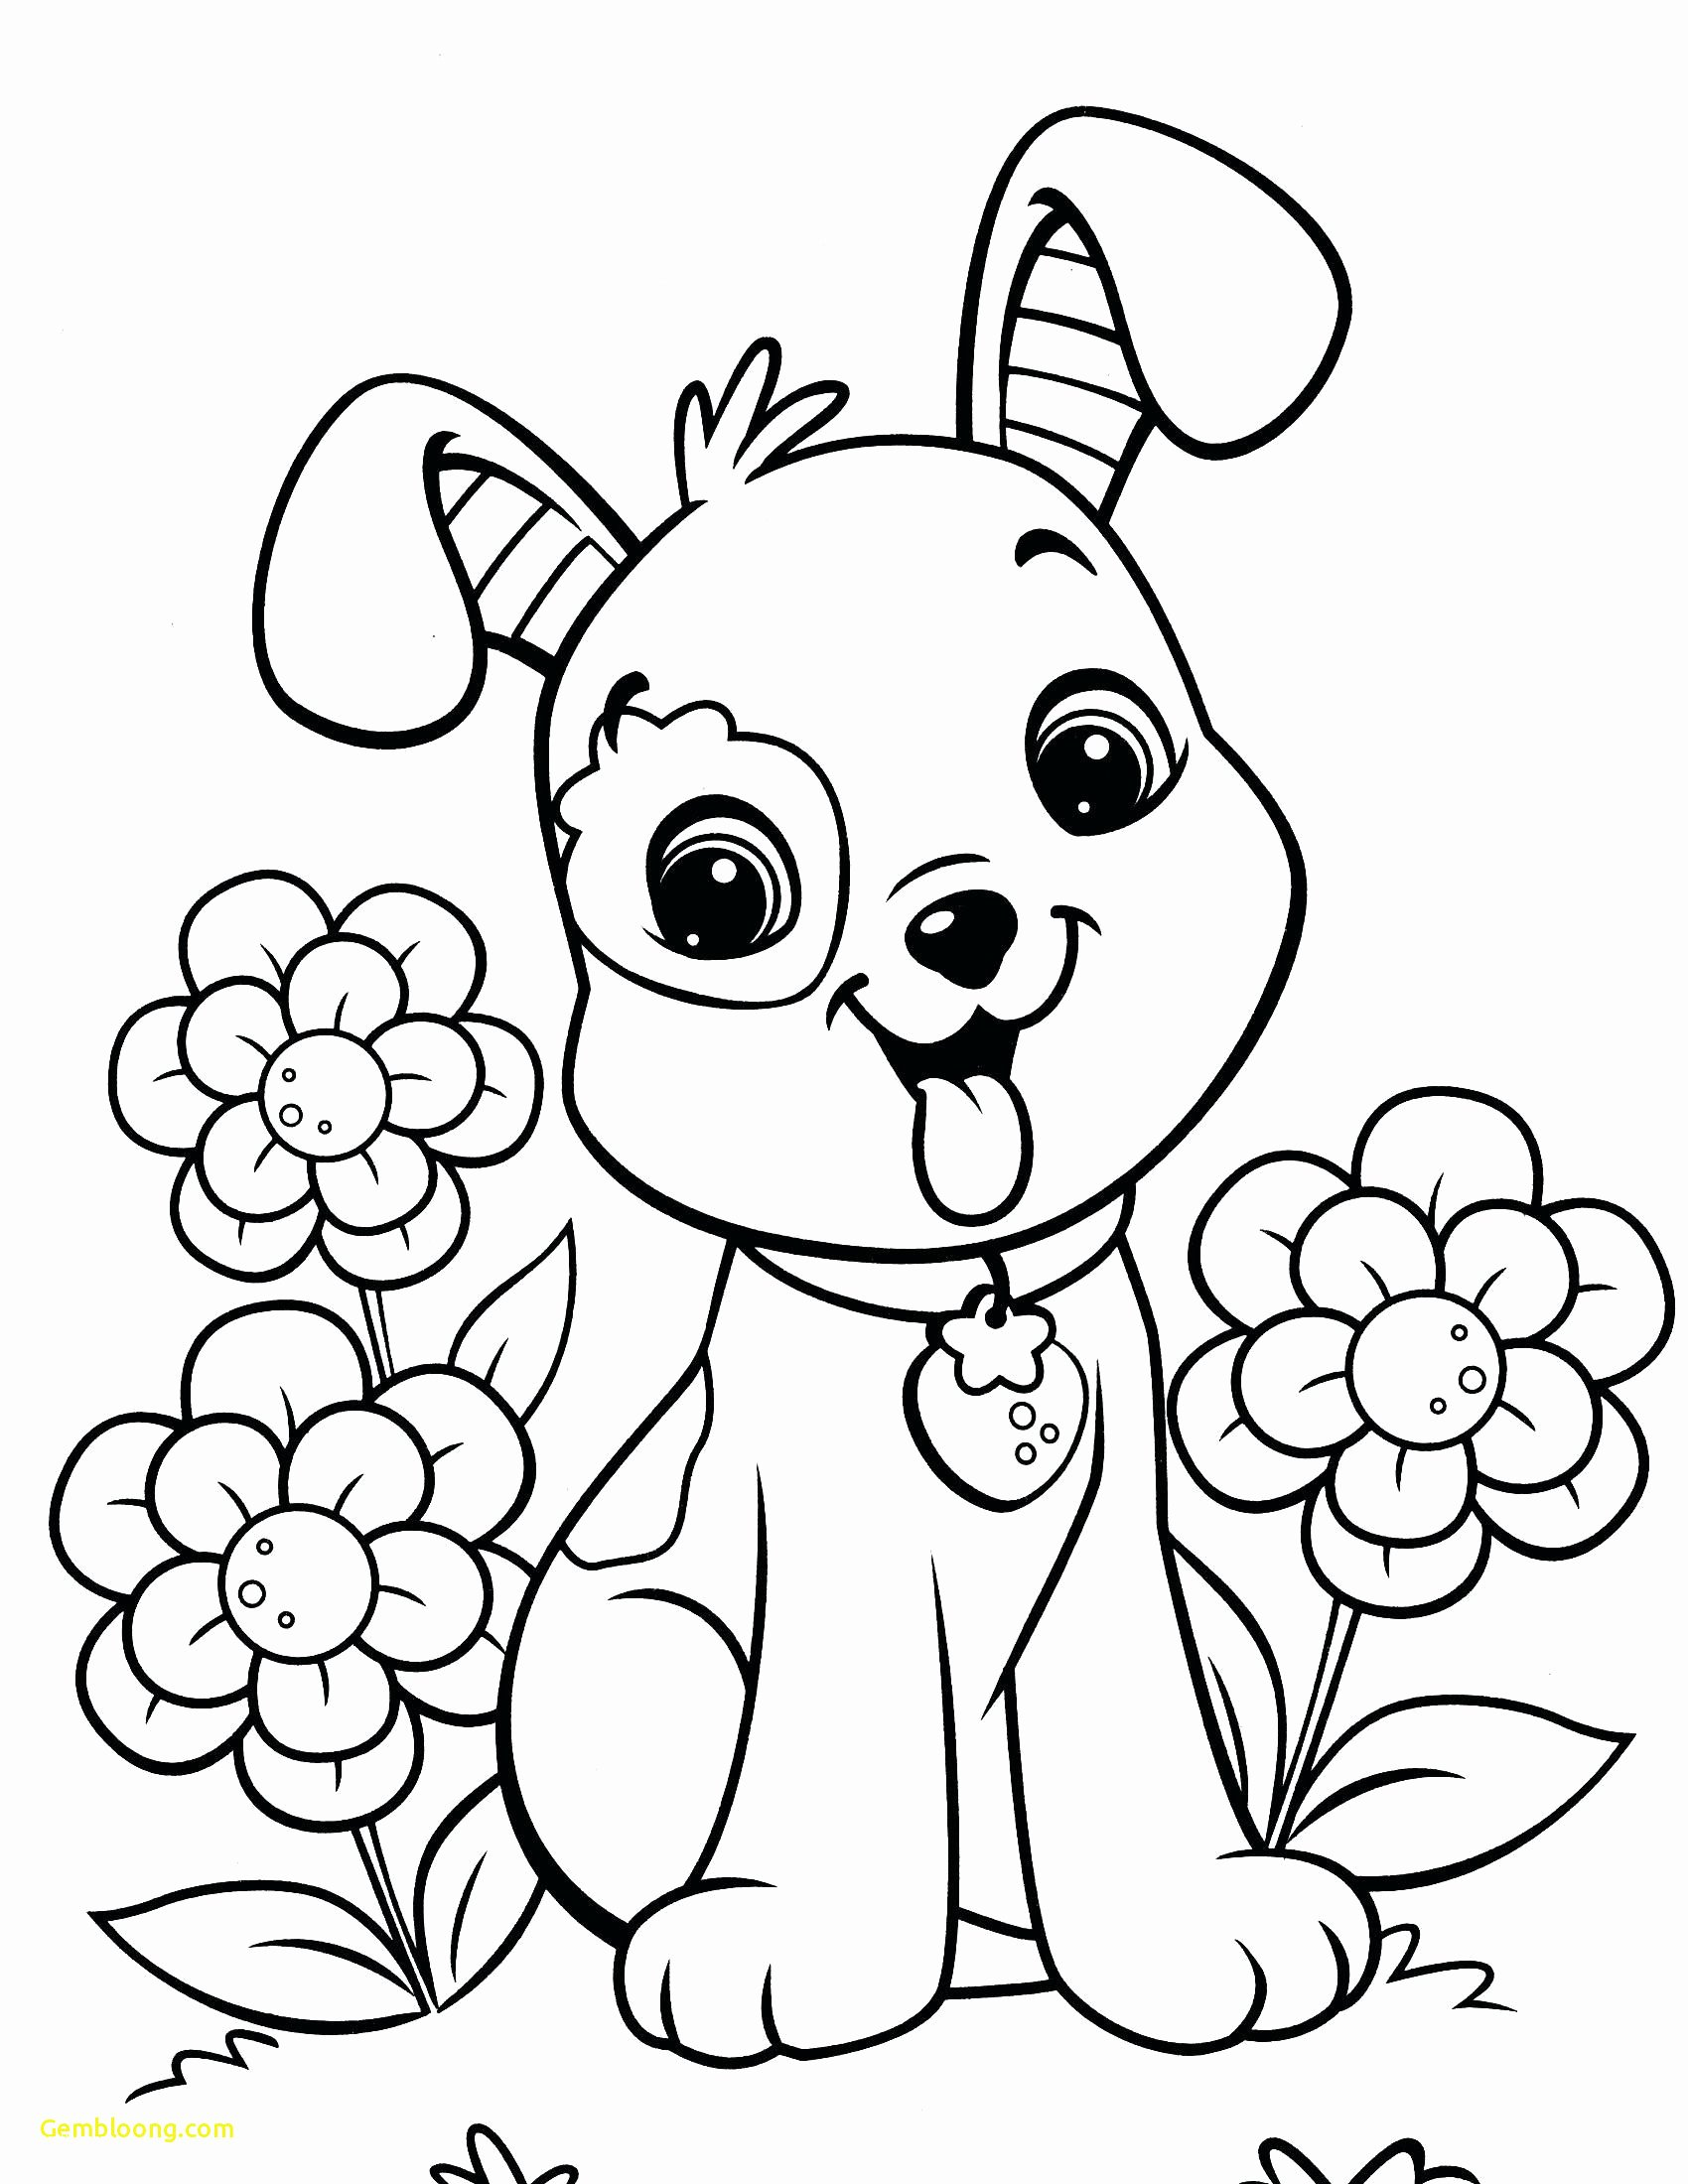 Printable Coloring Worksheets for Preschoolers Kids Printable Coloring Pages for Preschoolers